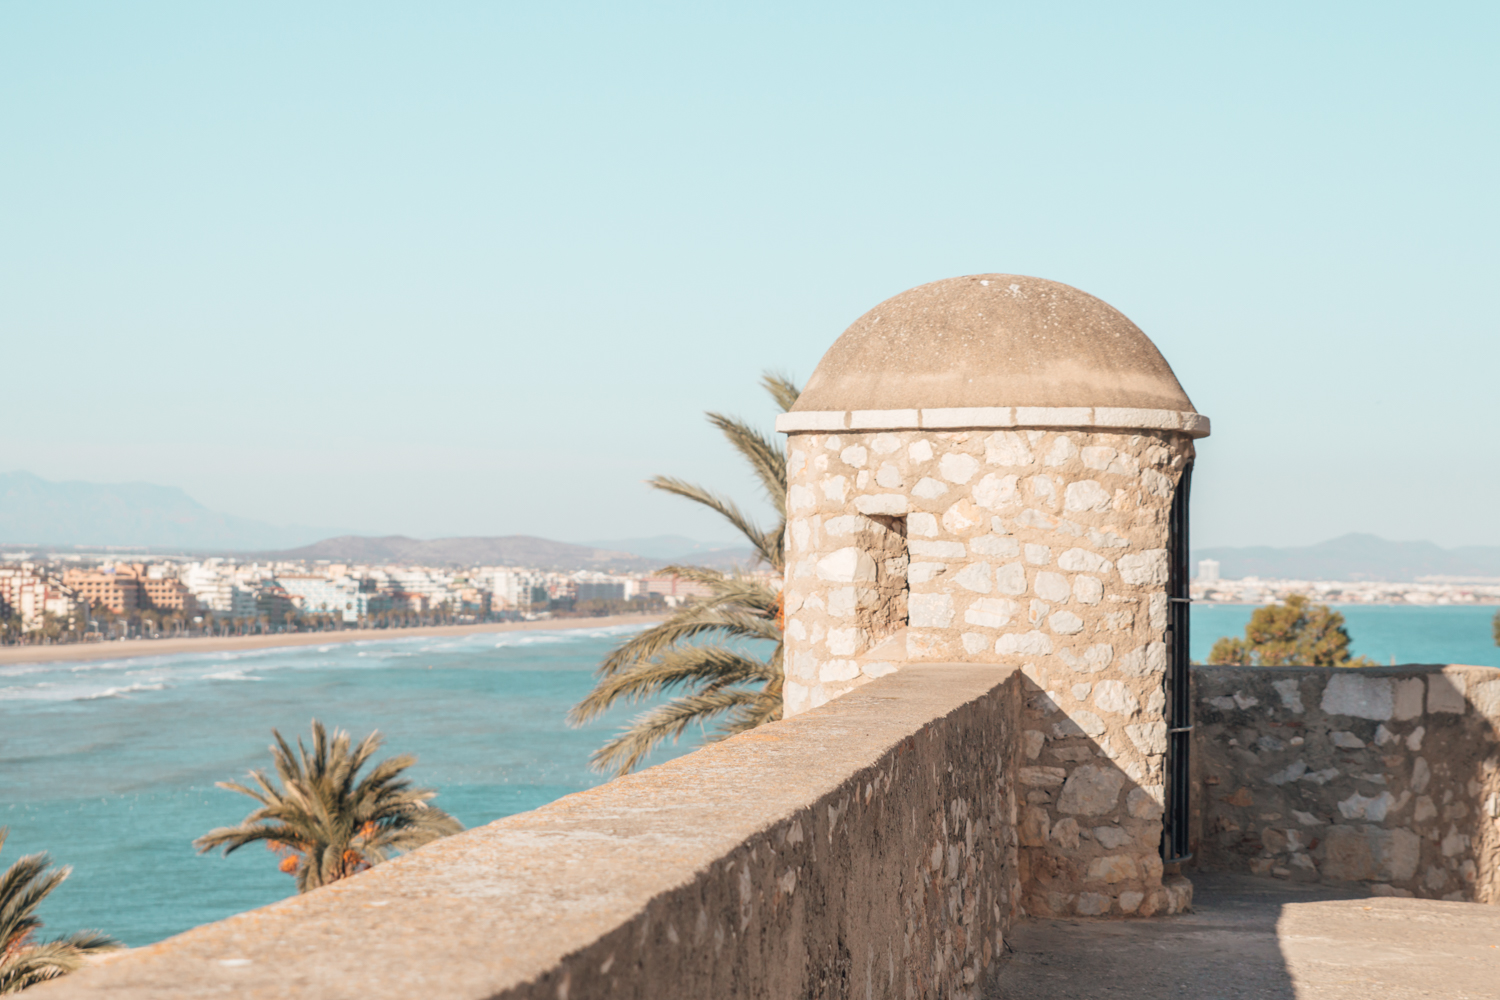 What to see in Peniscola